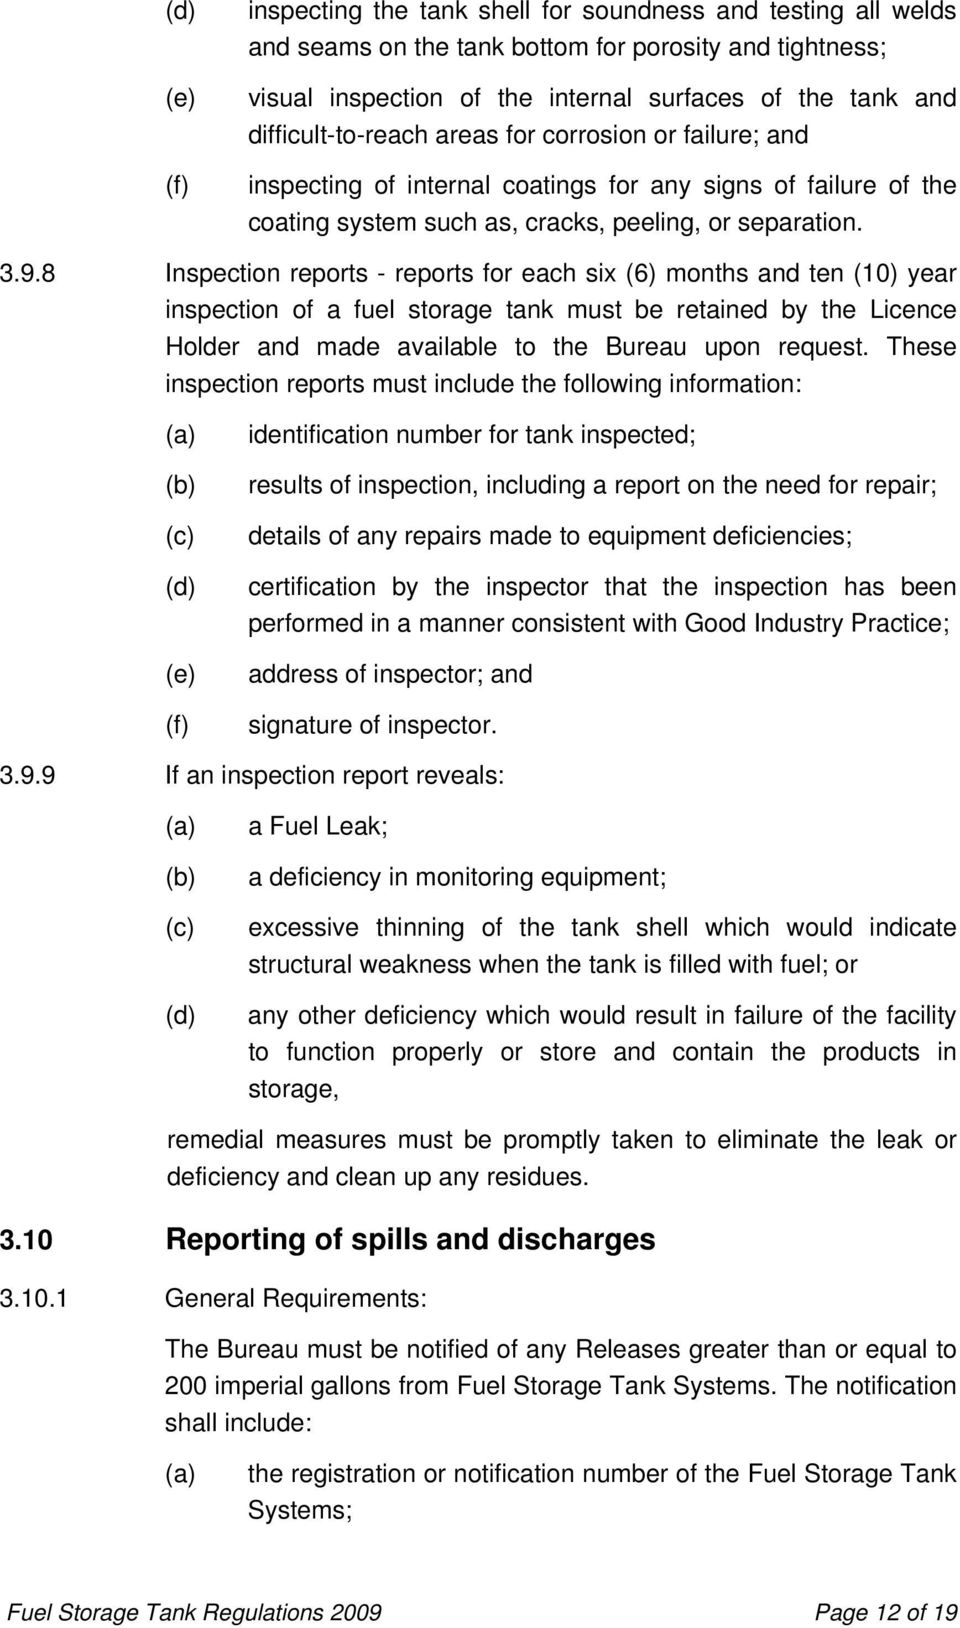 8 Inspection reports - reports for each six (6) months and ten (10) year inspection of a fuel storage tank must be retained by the Licence Holder and made available to the Bureau upon request.